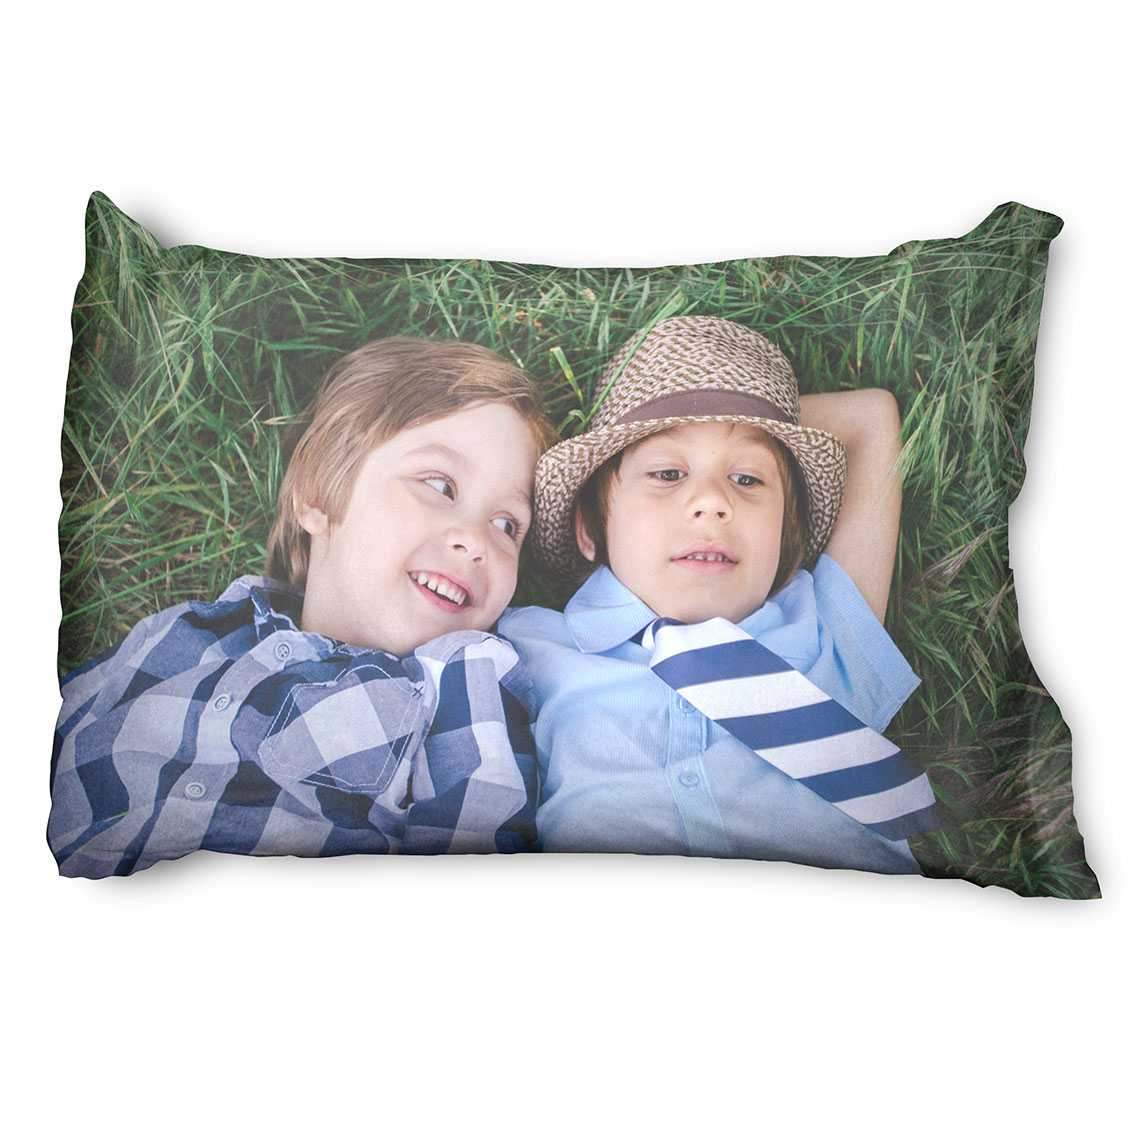 print my face on a pillow